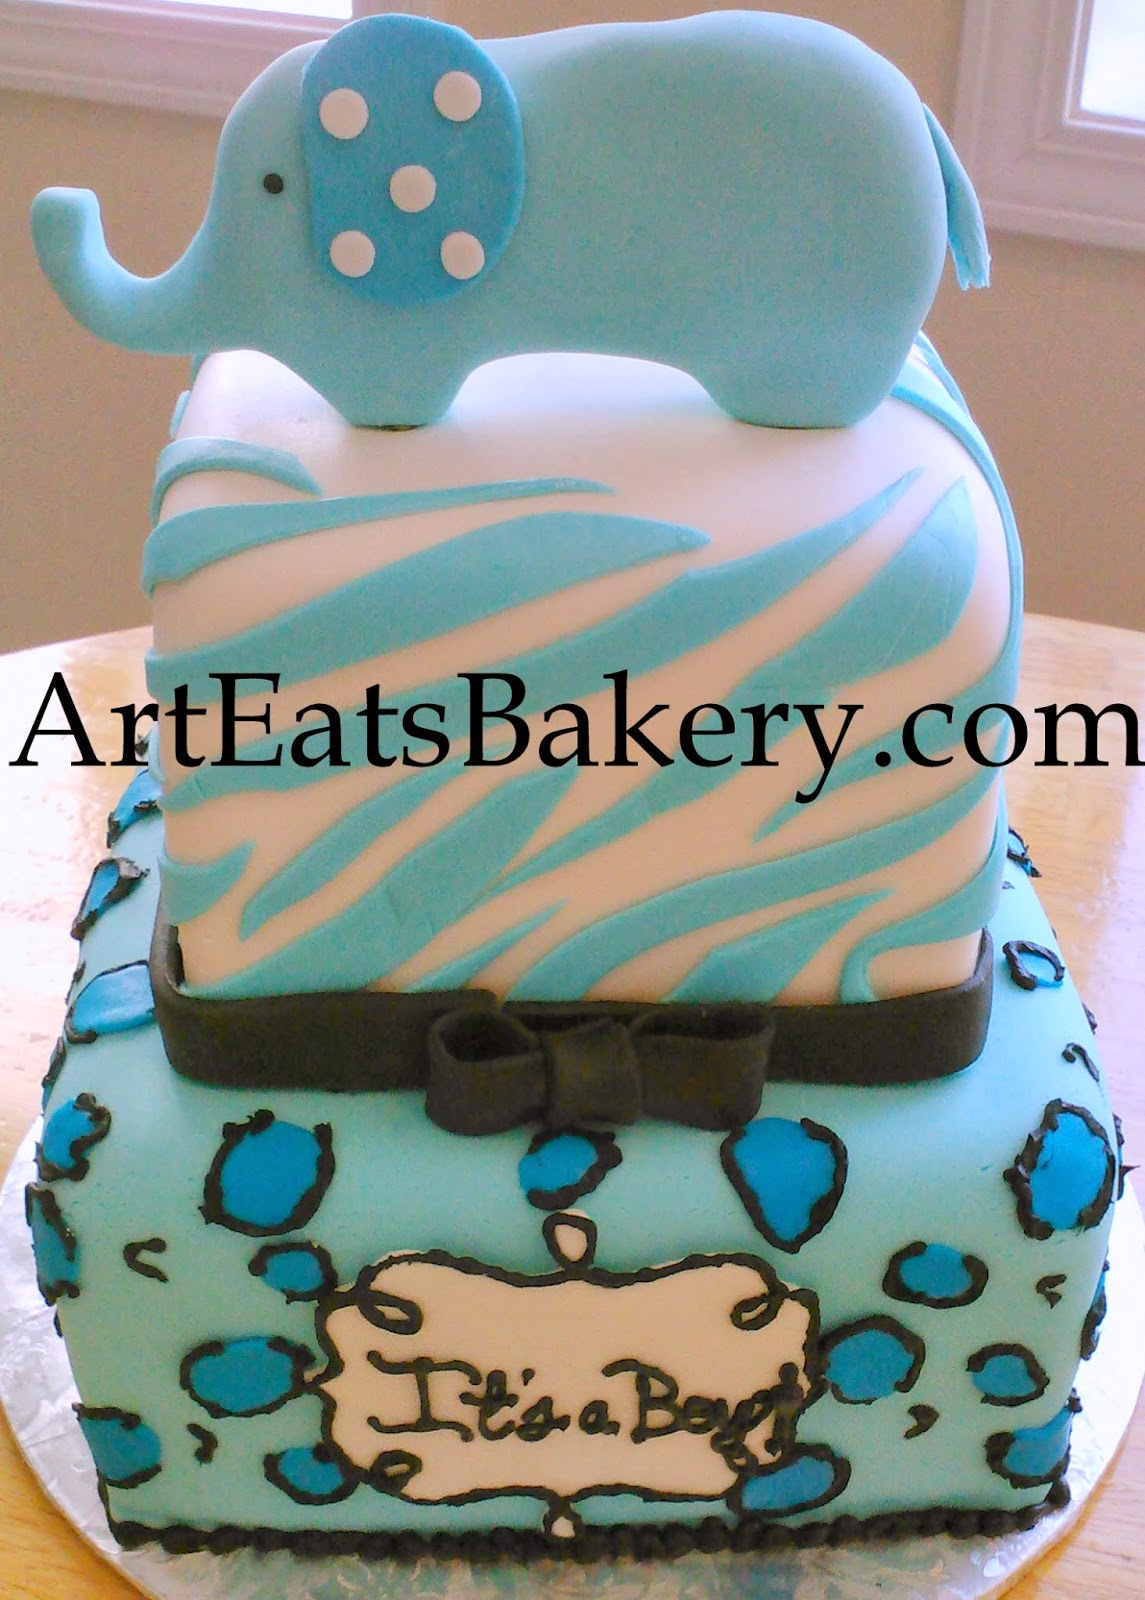 Above And Beyond Cakes Facebook